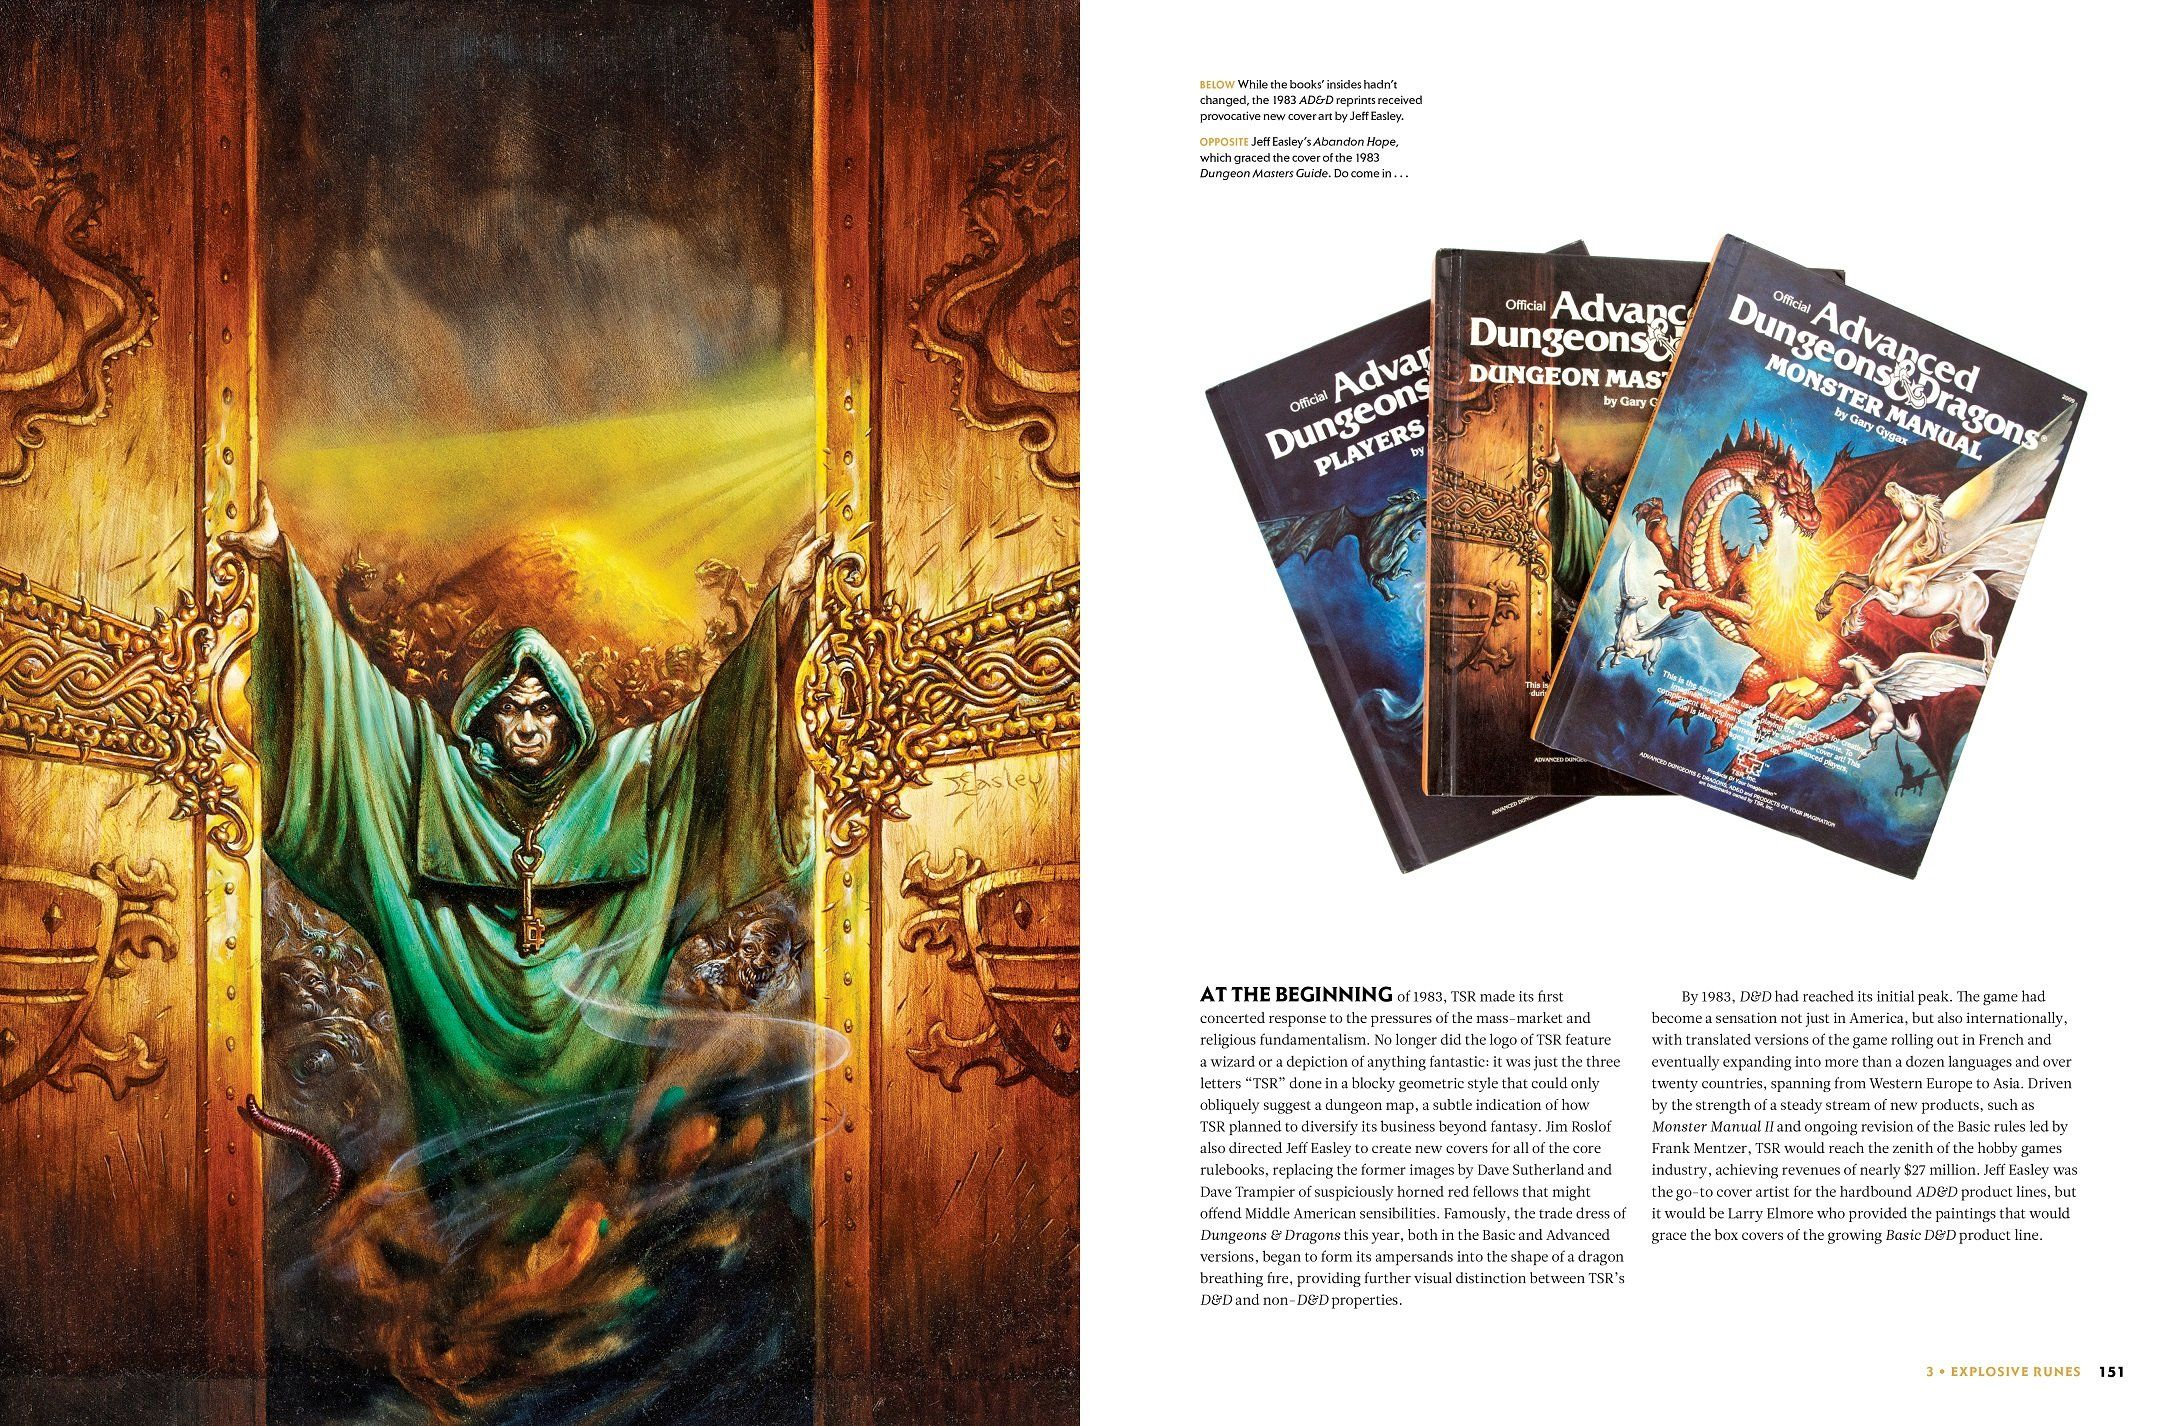 Dungeons and Dragons Art and Arcana: A Visual History (Hardcover) - 5